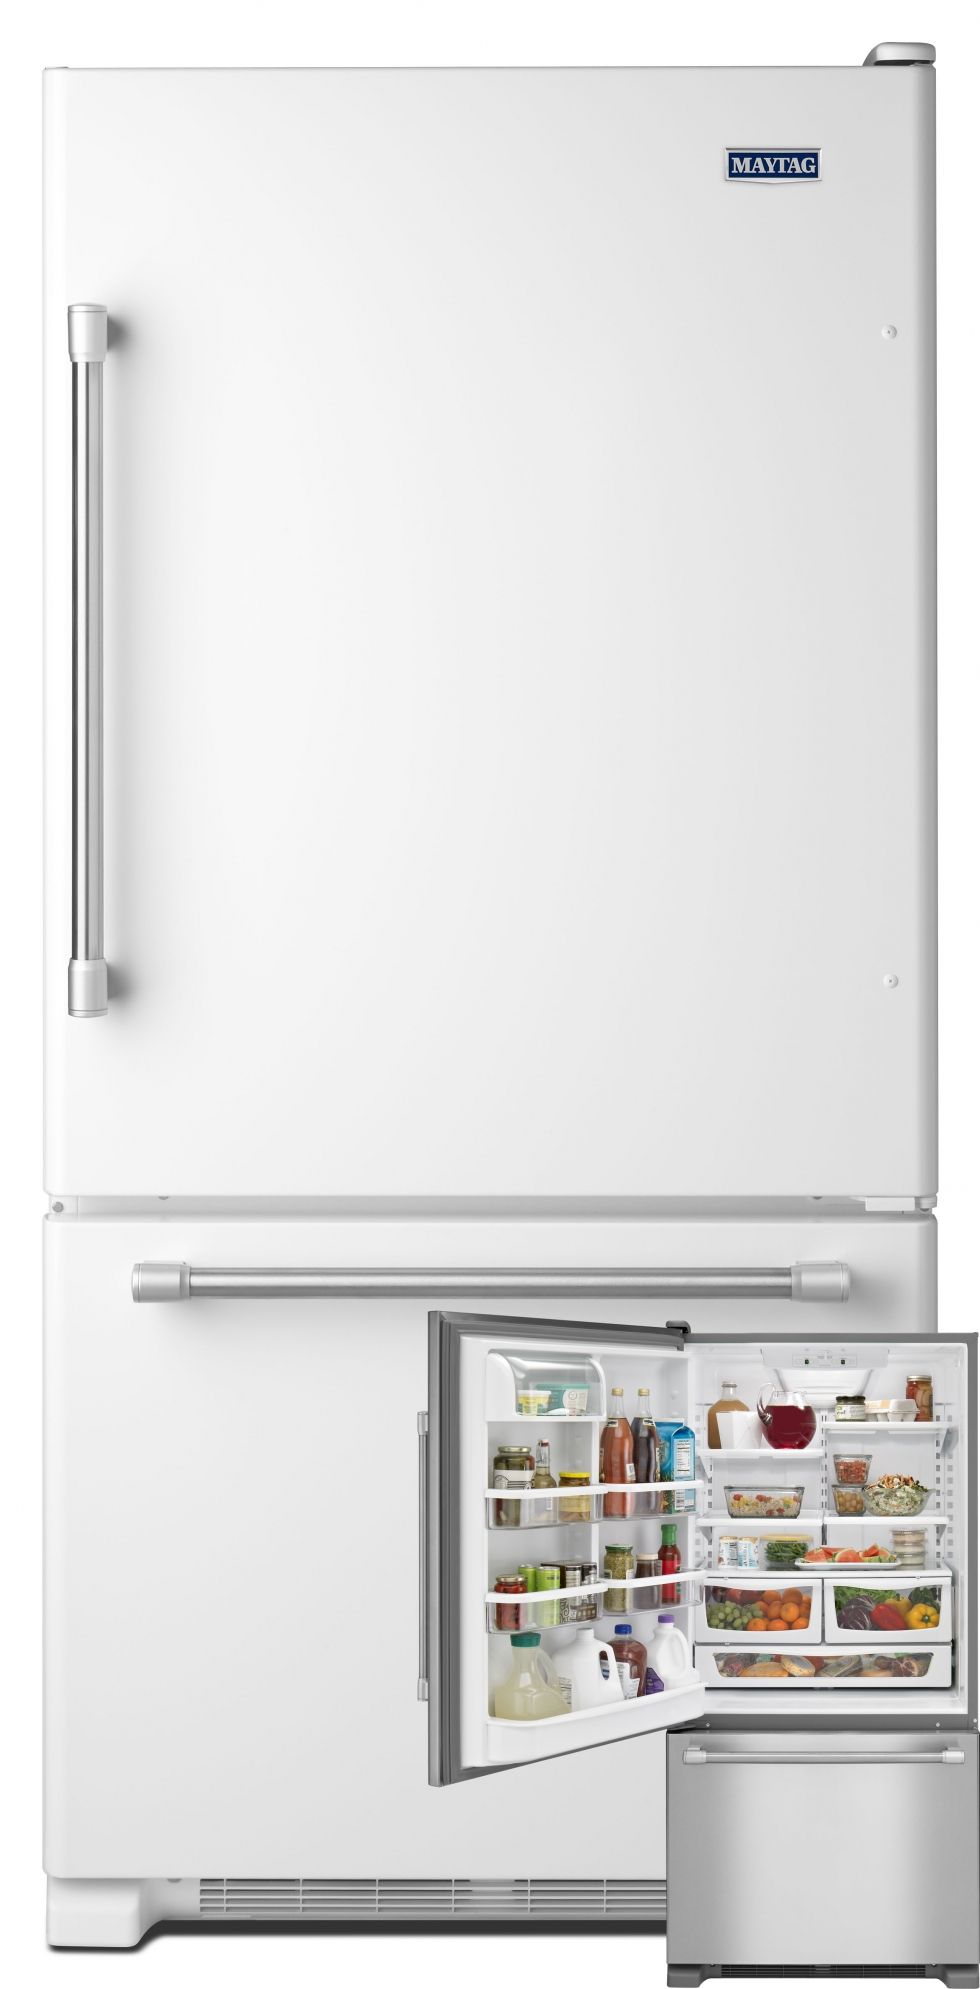 Maytag Bottom Freezer Refrigerator White Start Saving Today